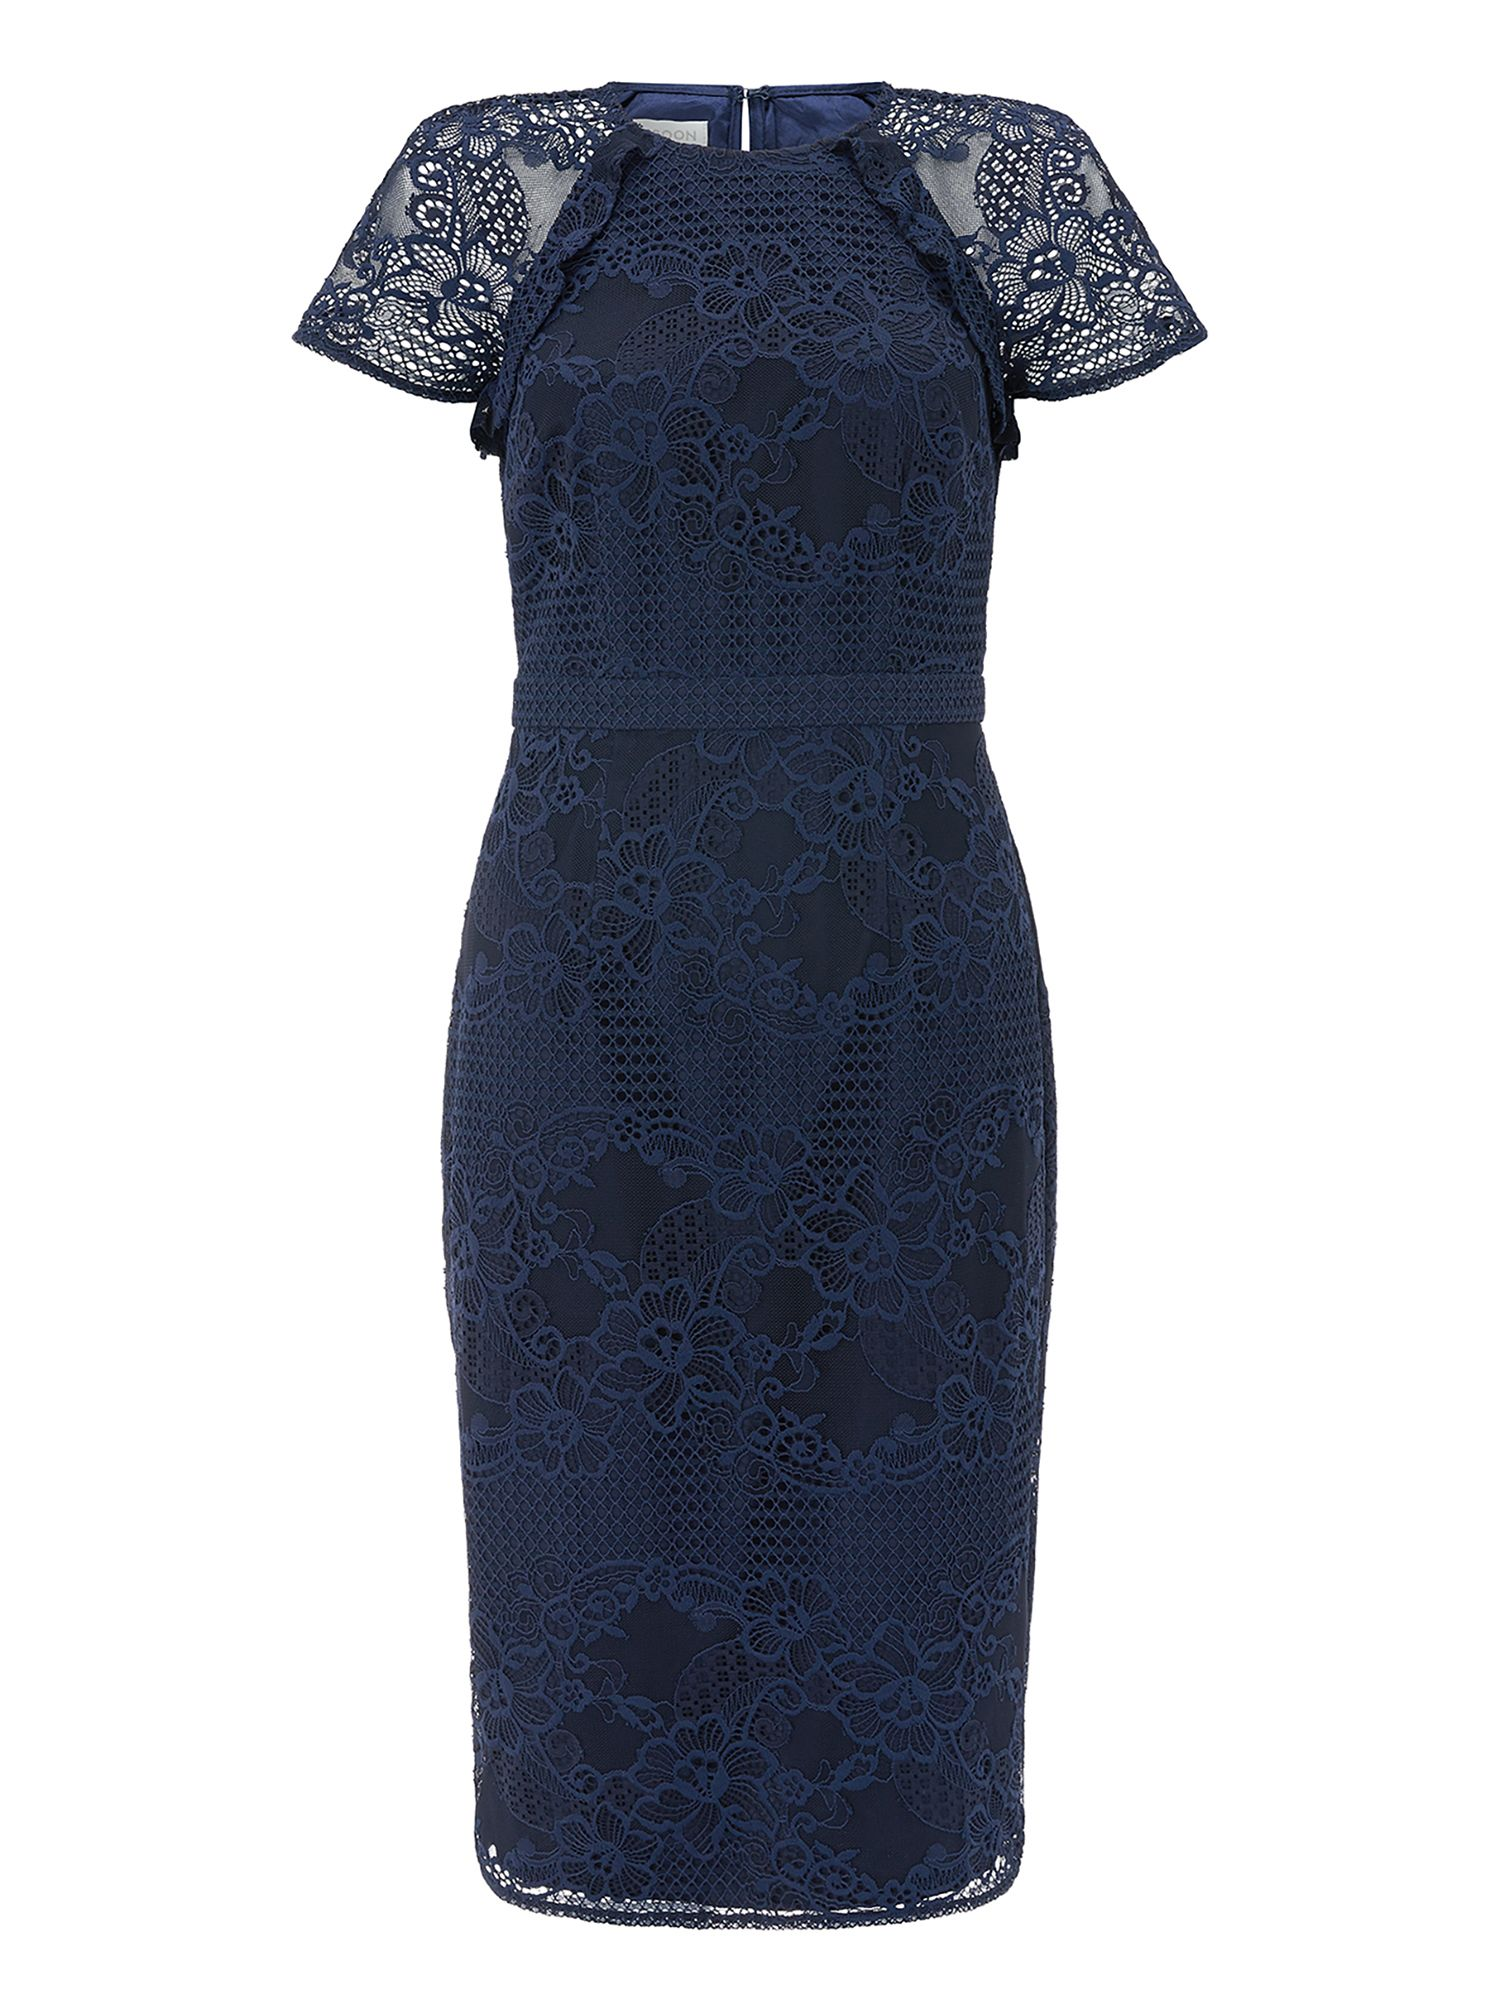 Monsoon Lucy Lace KL Dress, Blue